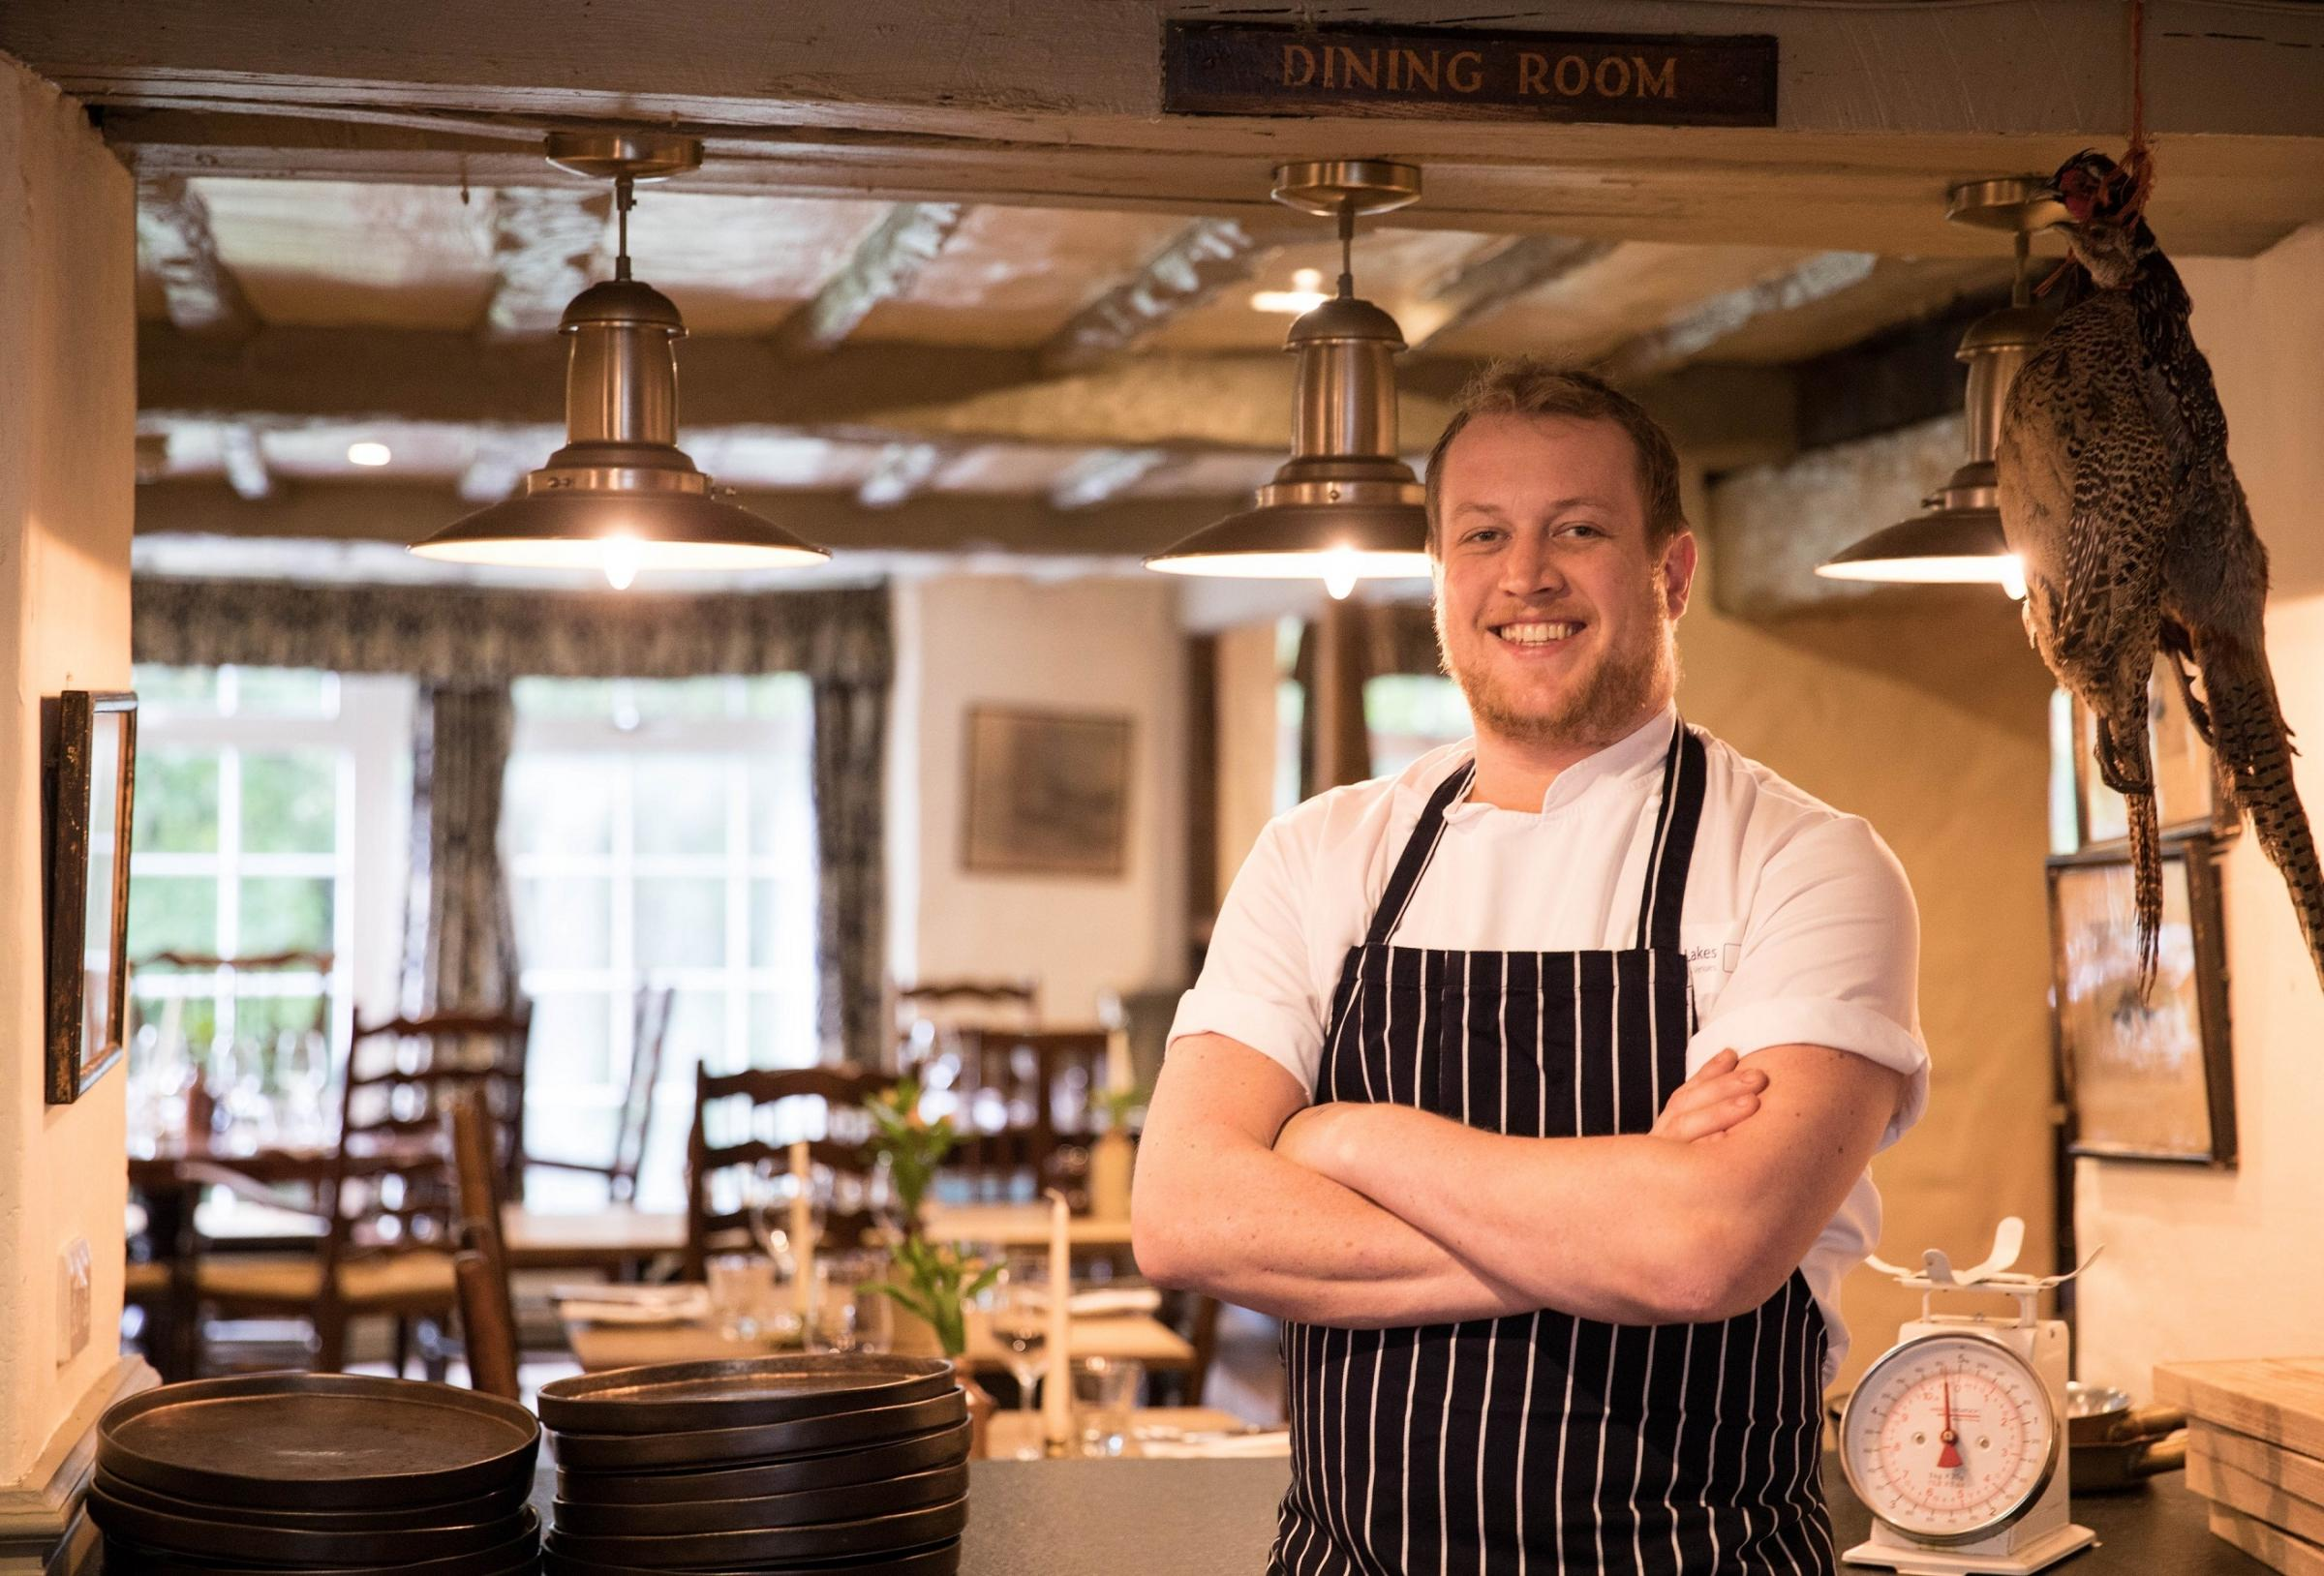 role: Gordon Stewart is the new head chef at the Wild Boar Inn near Windermere